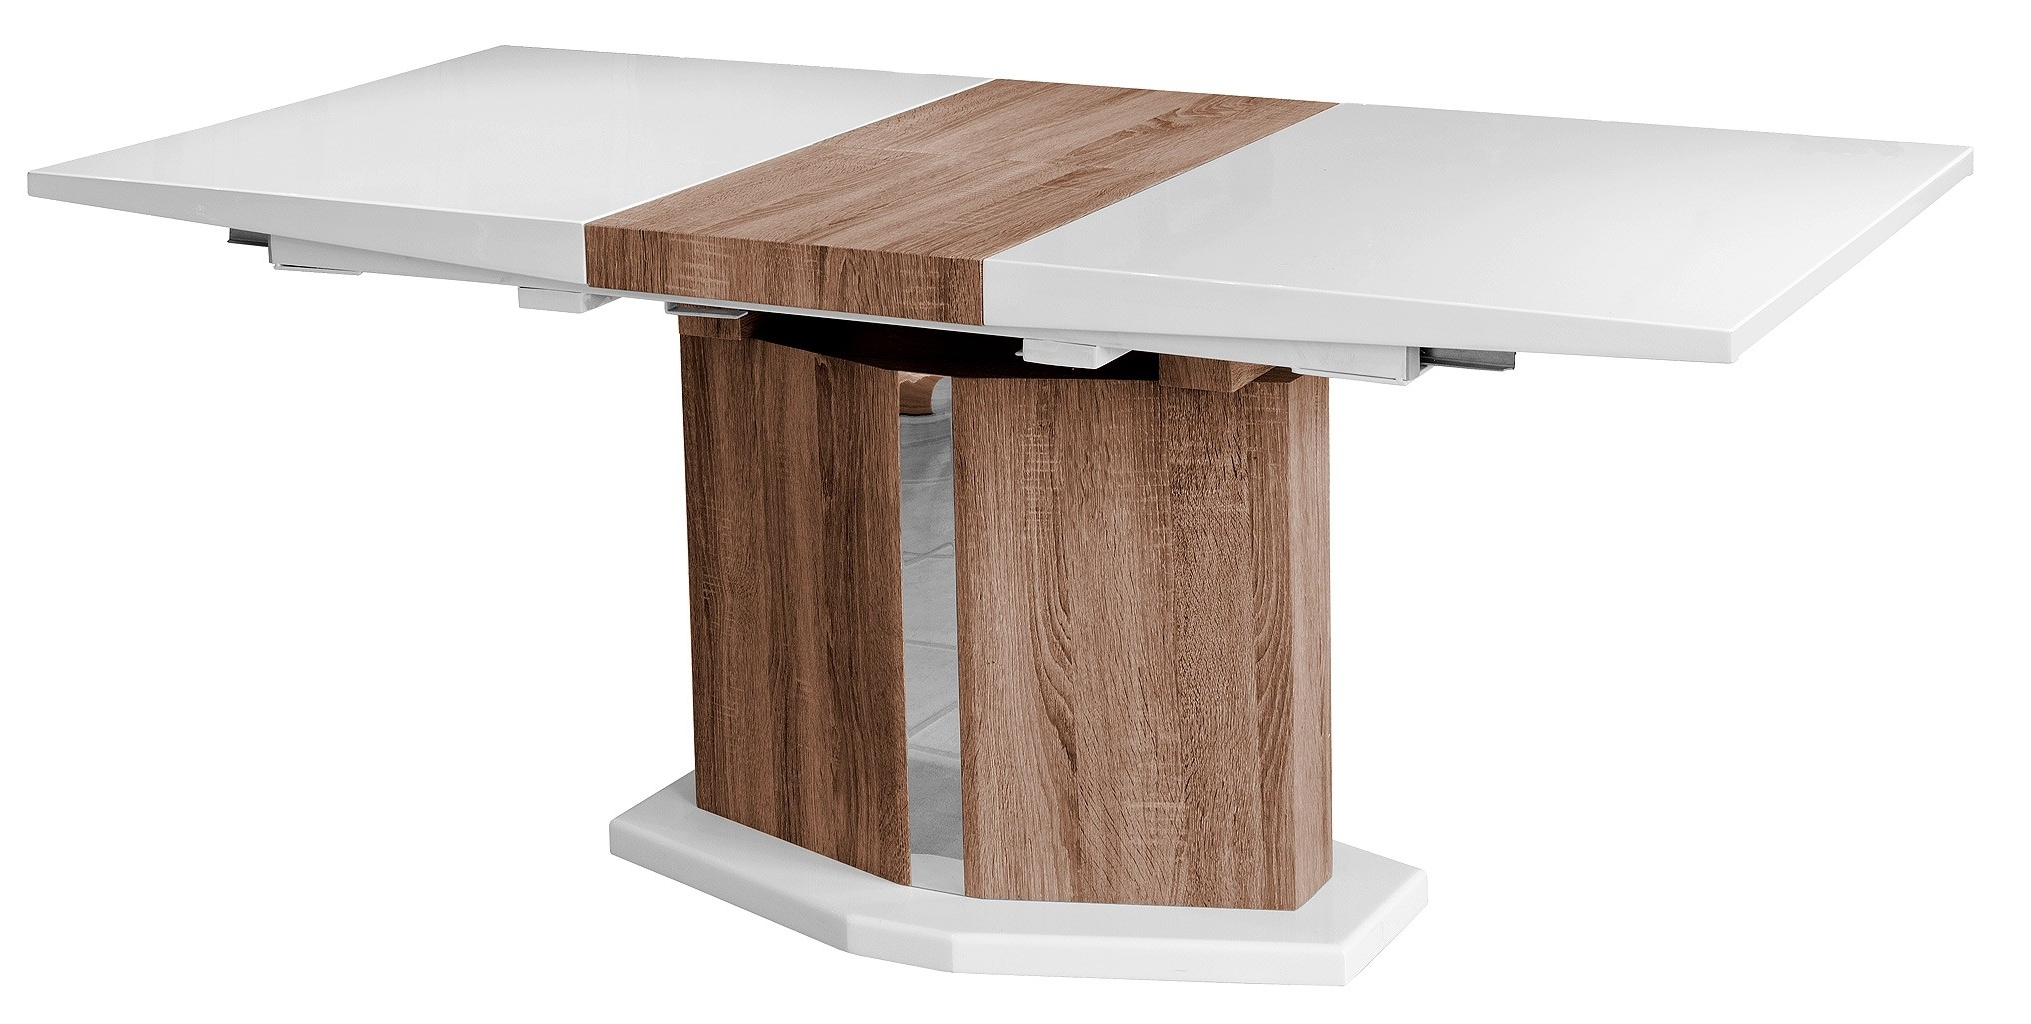 Most Recent High Gloss White Extending Dining Table – Be Fabulous! In Dark Wood Extending Dining Tables (View 22 of 25)